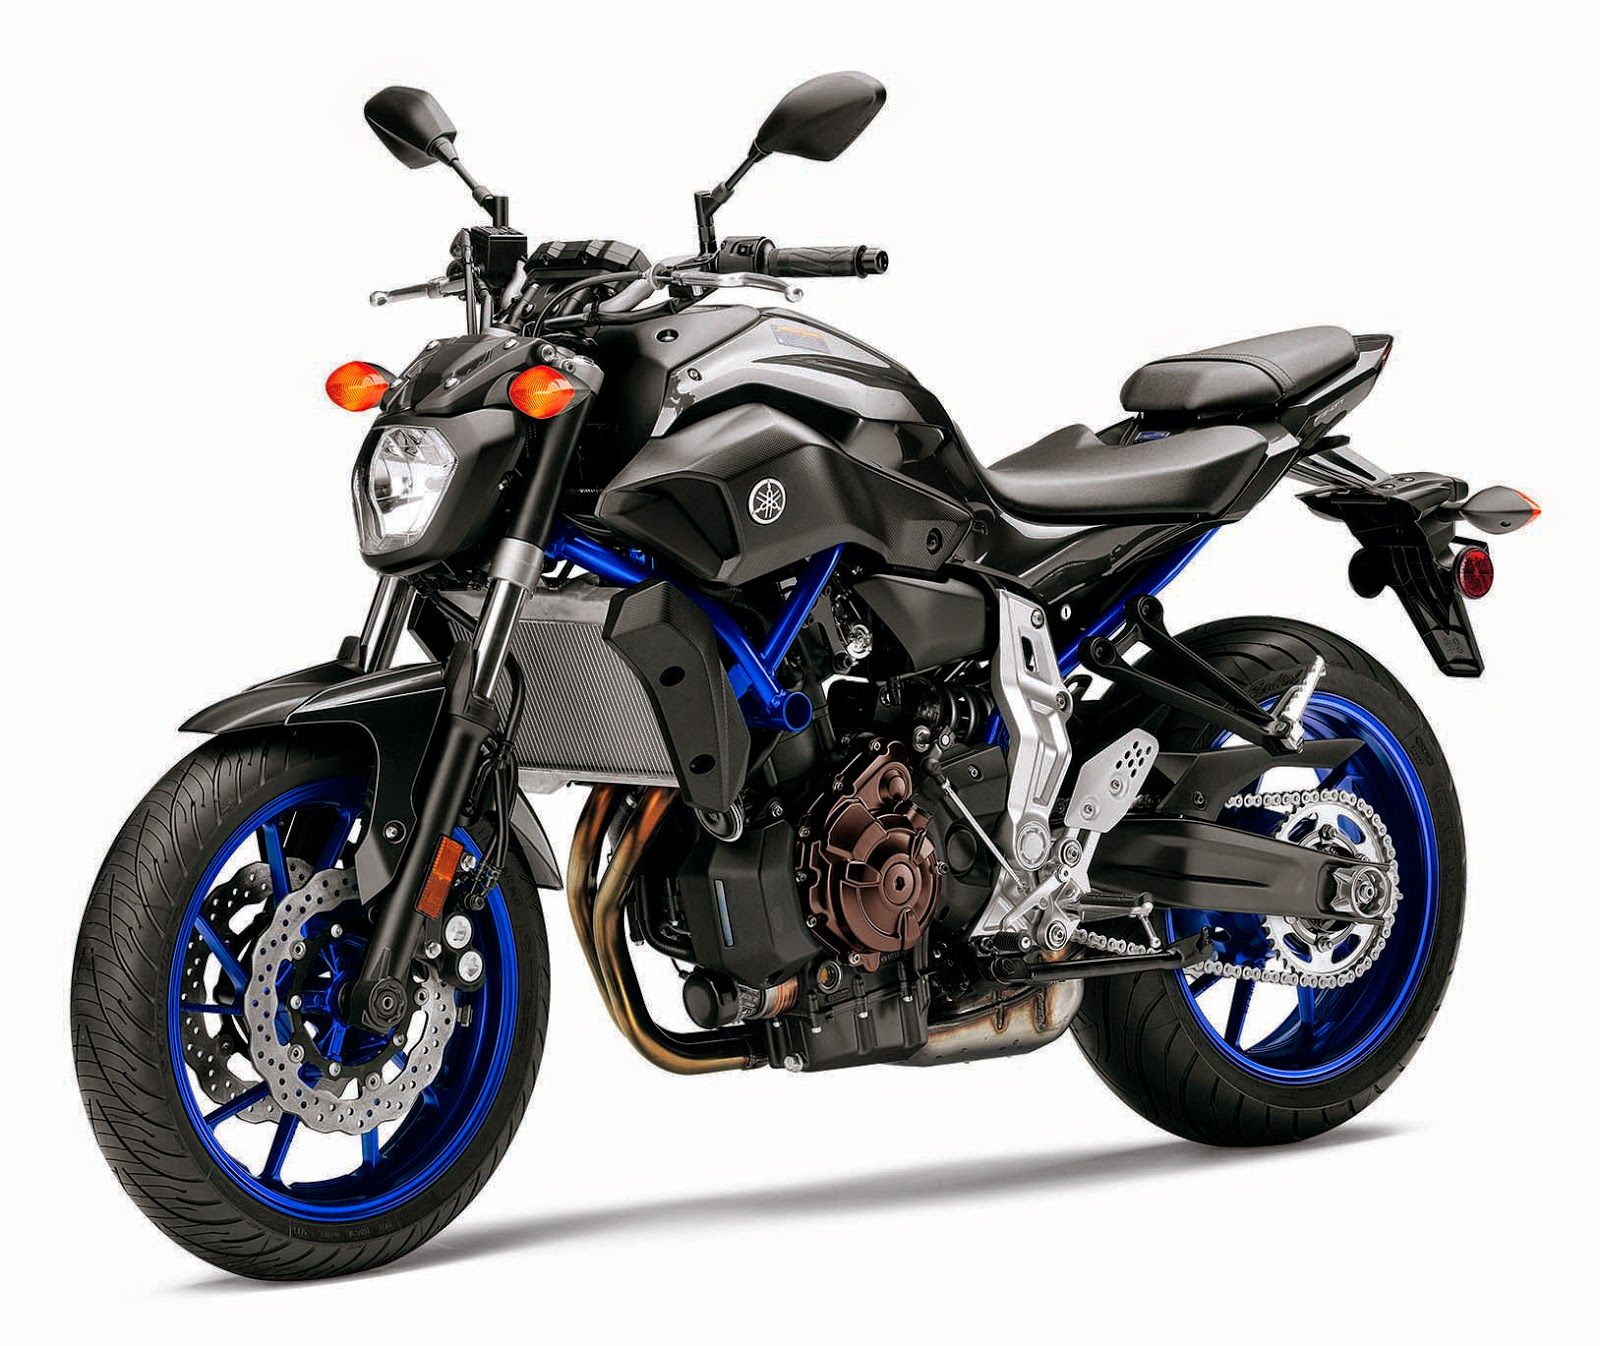 yamaha mt 07 2014 ckd di pasang di malaysia harga asas rm34 800 arena motor. Black Bedroom Furniture Sets. Home Design Ideas